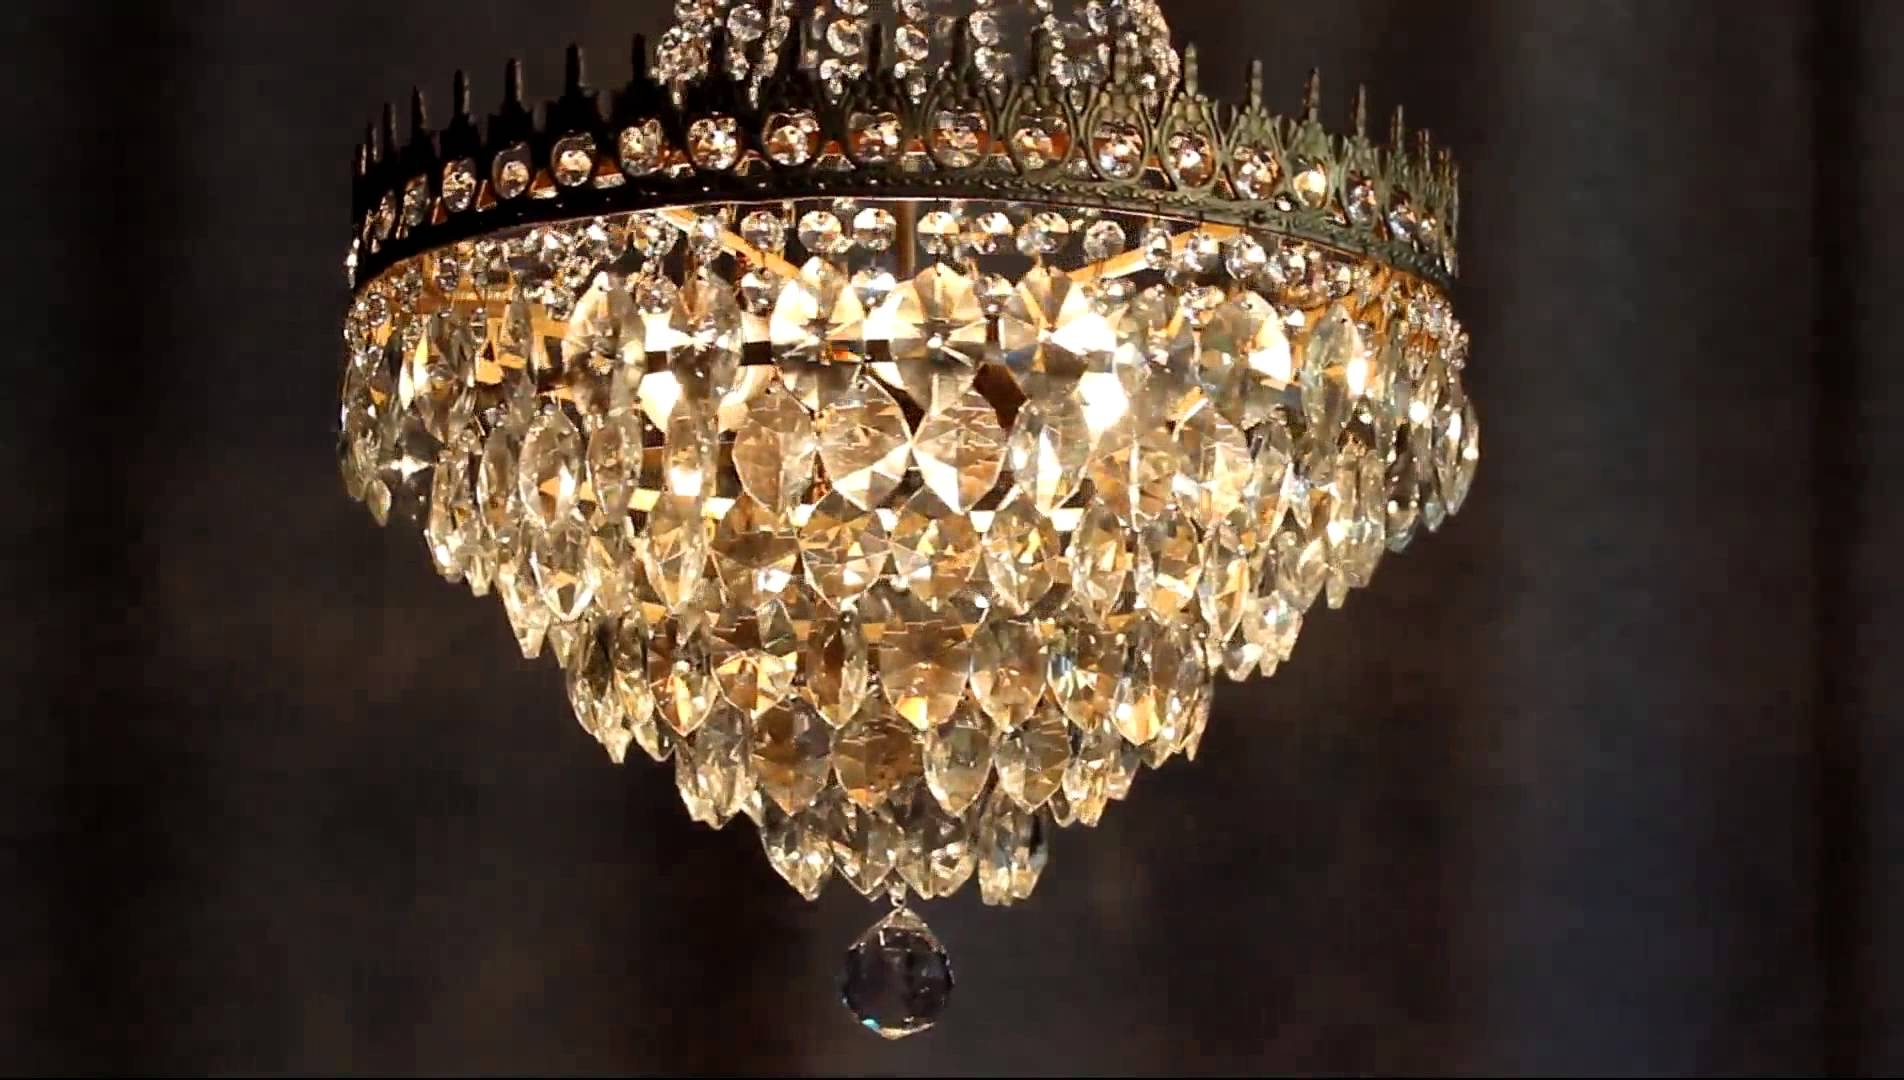 Huge Antique Luster Crystal Candelabra Chandelier Lighting Brass Throughout Huge Crystal Chandeliers (#6 of 12)